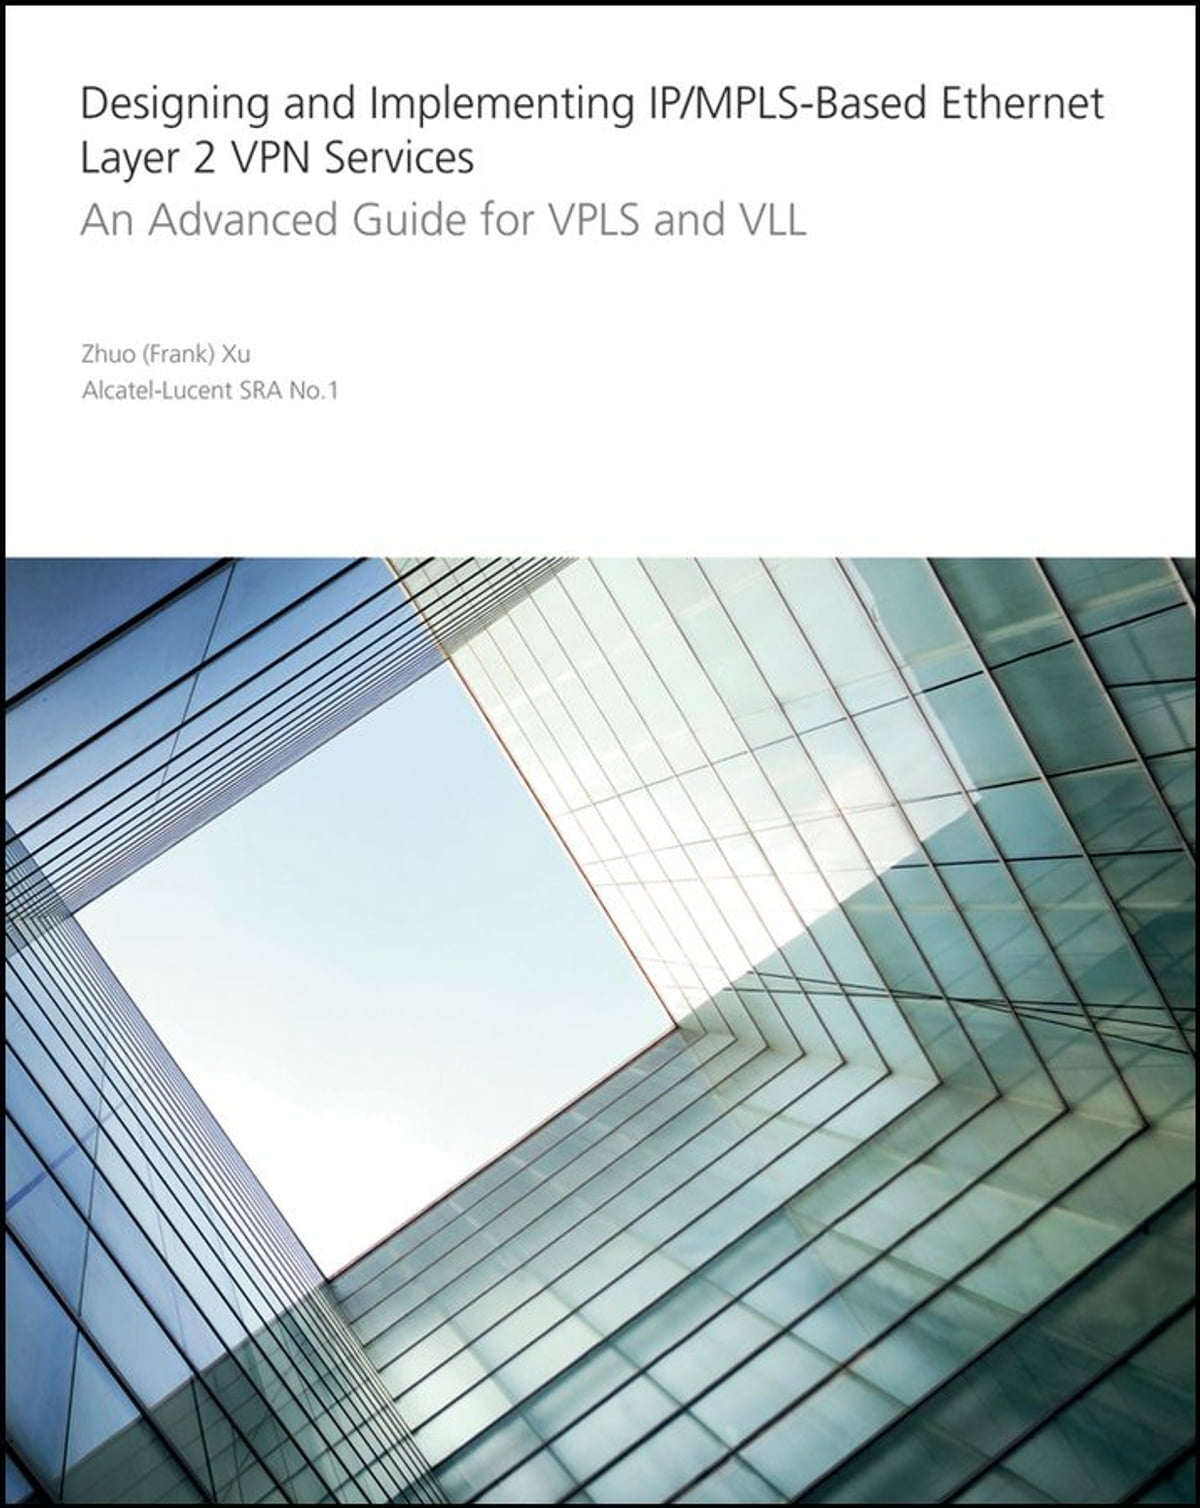 Designing and Implementing IP/MPLS-Based Ethernet Layer 2 VPN Services  eBook by Zhuo Xu - 9780470730560   Rakuten Kobo